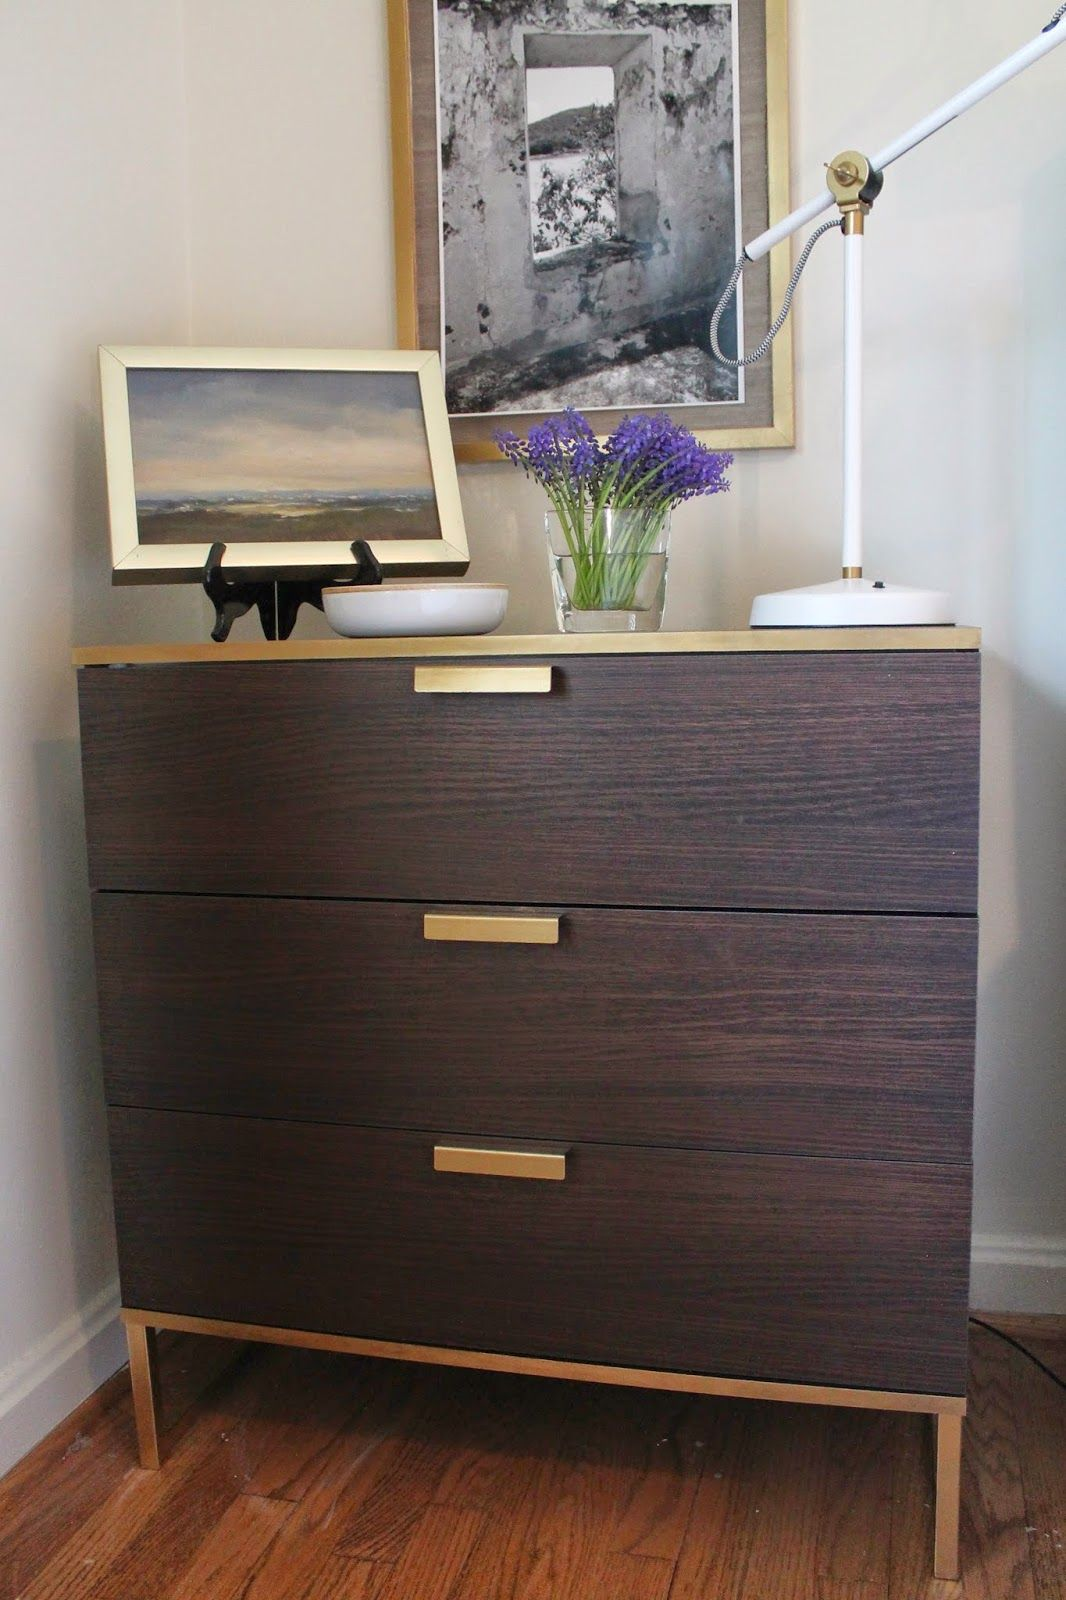 The nightstand is a mini ikea hack of the trysil dresser for Ikea brusali dresser